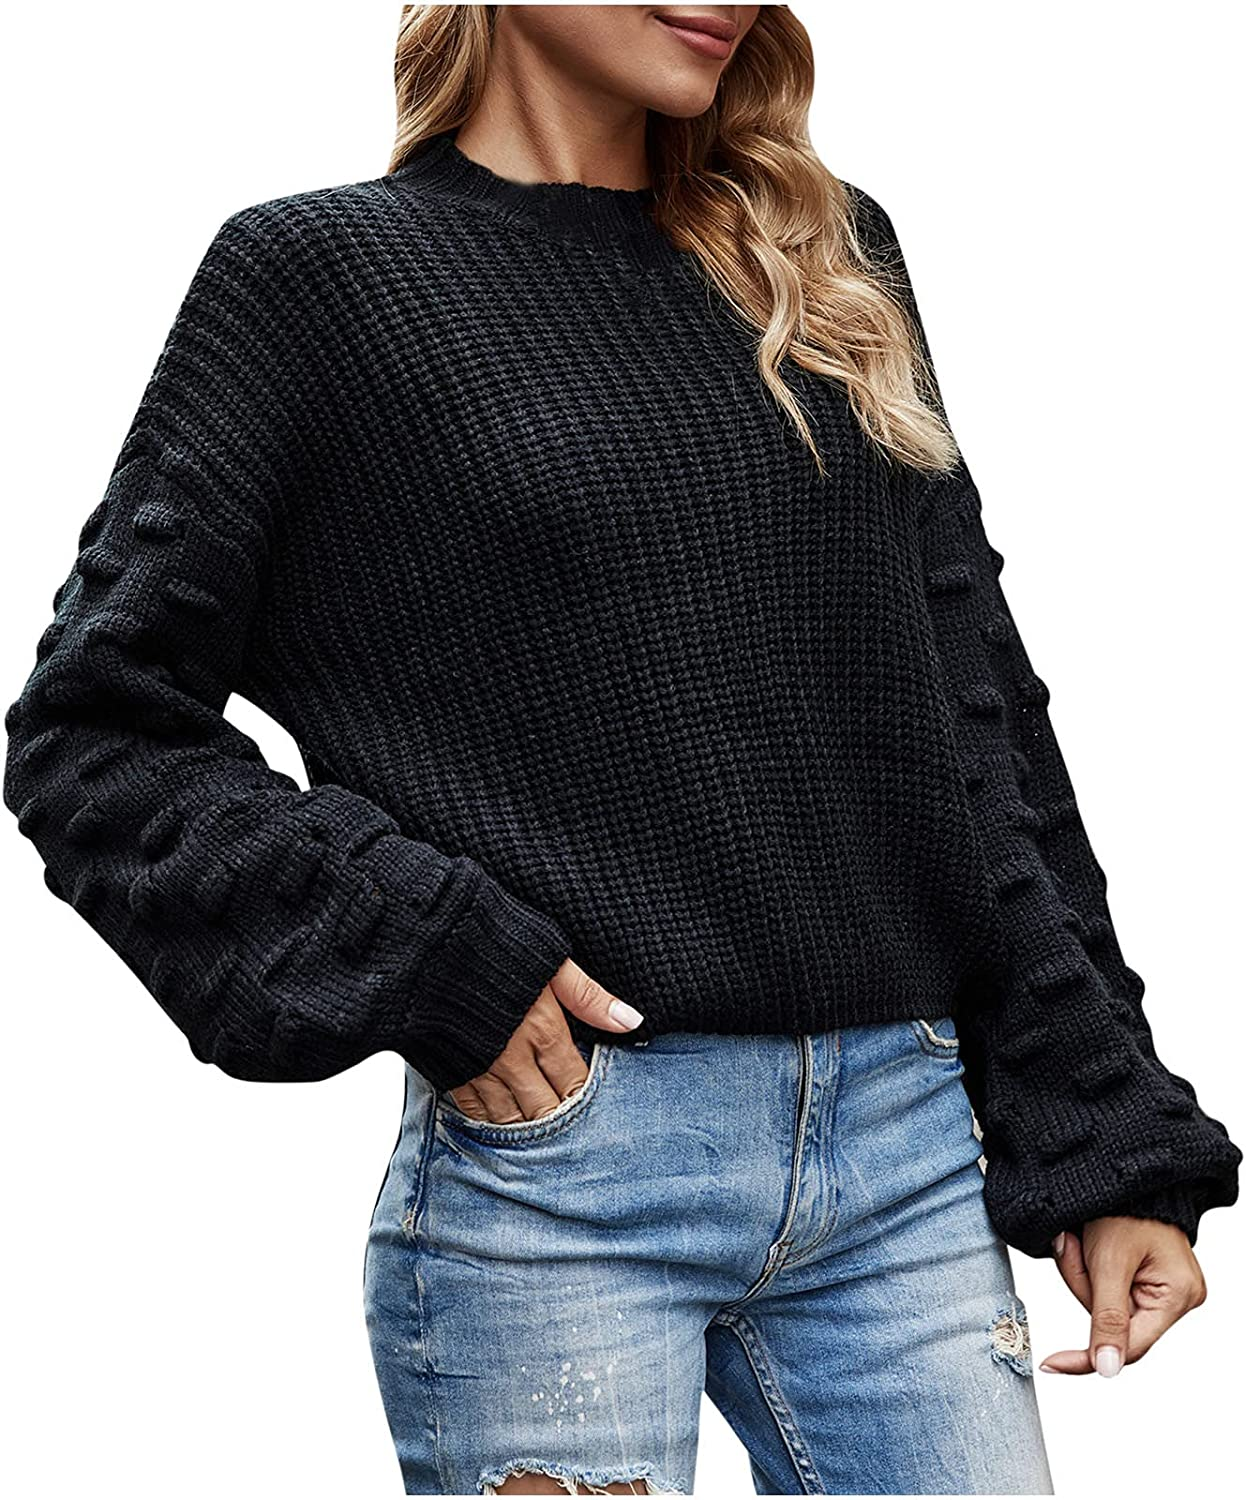 RFNIU White Sweater Womens Fall Fashion Casual Crew Neck Lantern Sleeve Knitted Pullover Shirt Loose Long Sleeve Tops